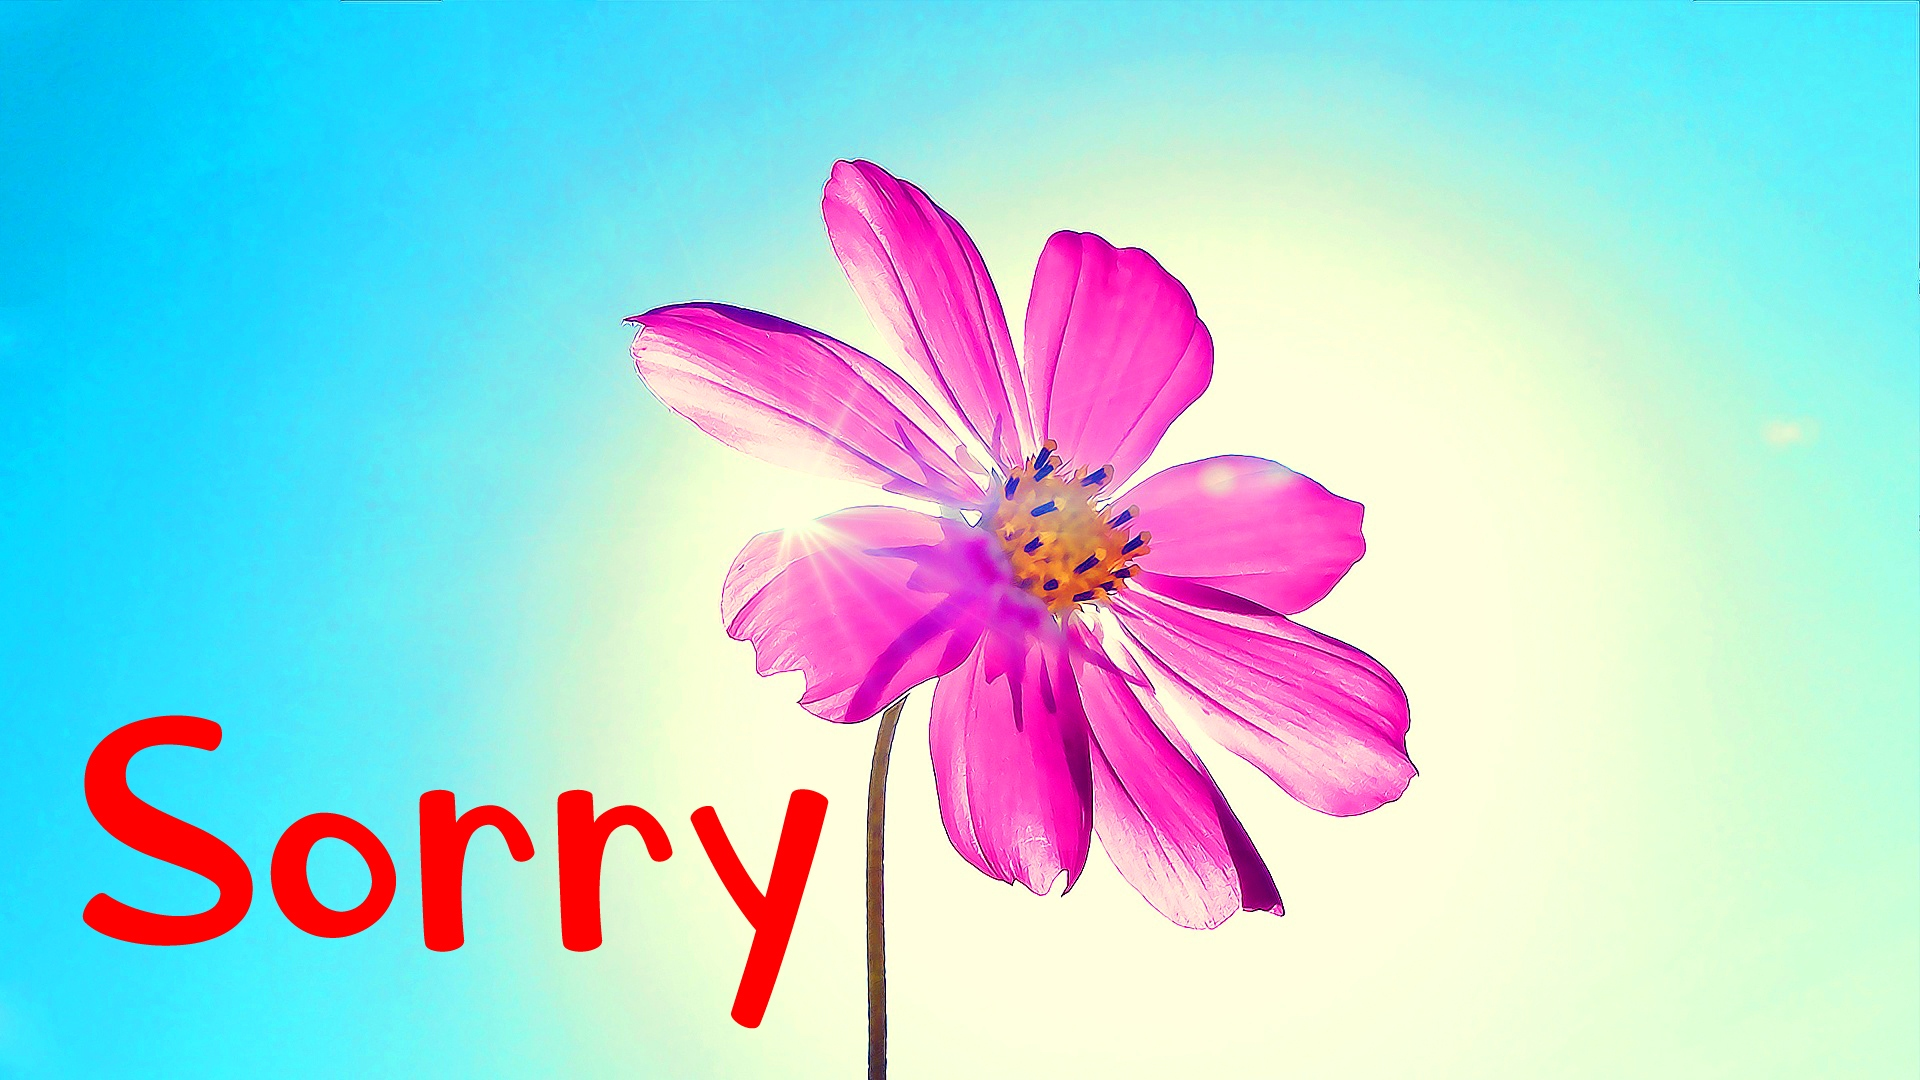 I am Sorry Images Wallpaper Photo Download